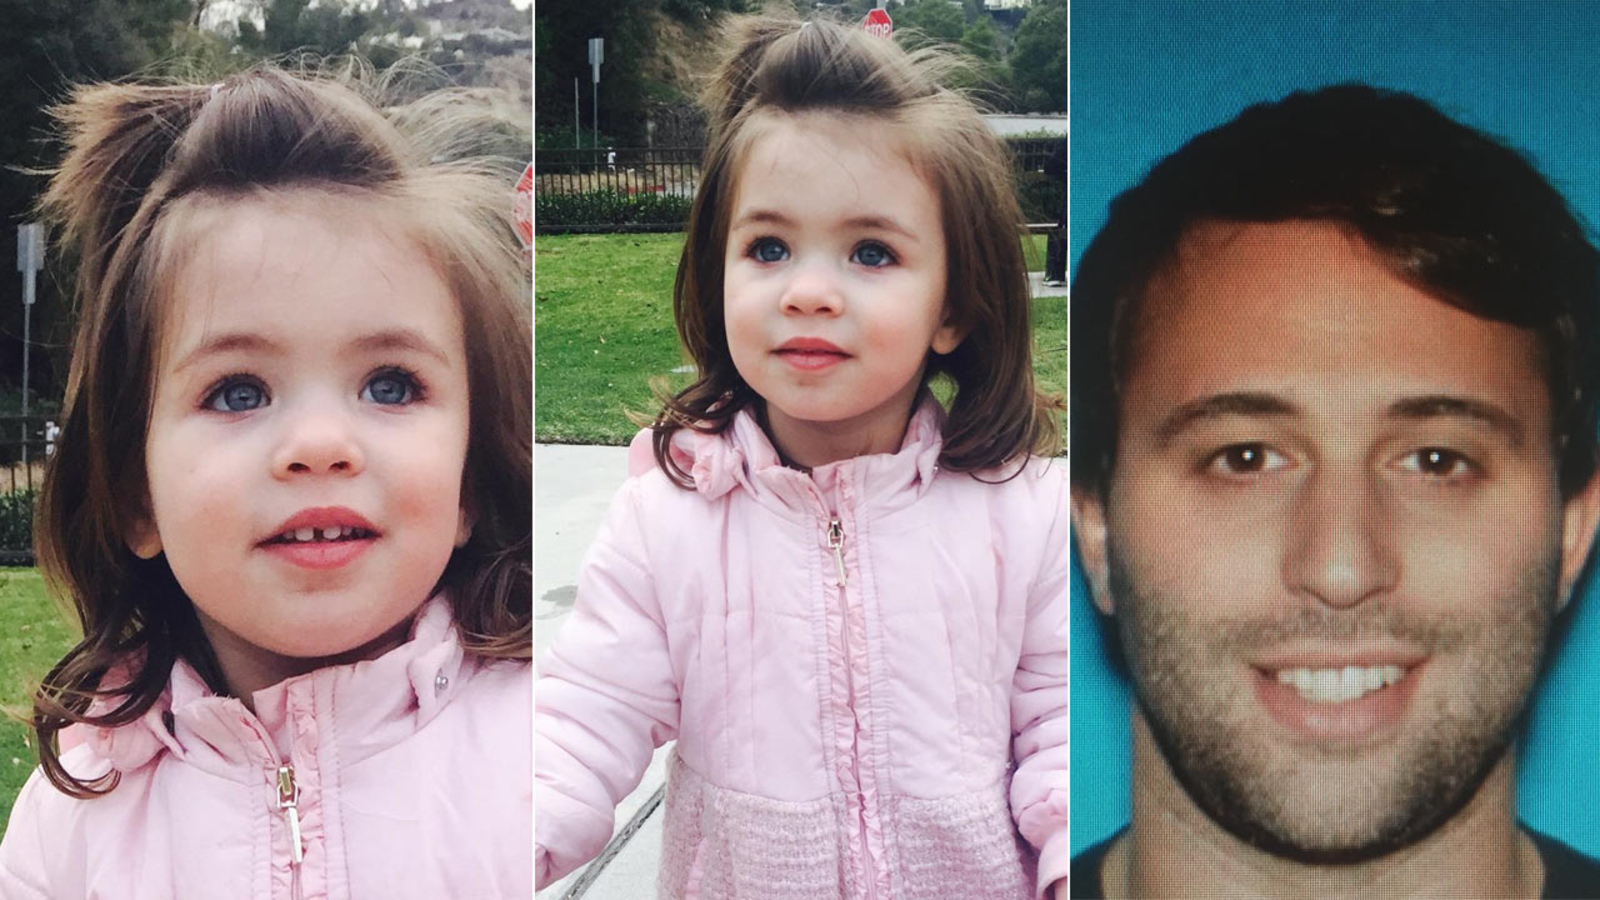 2-year-old girl abducted by father during supervised visit in Fairfax District